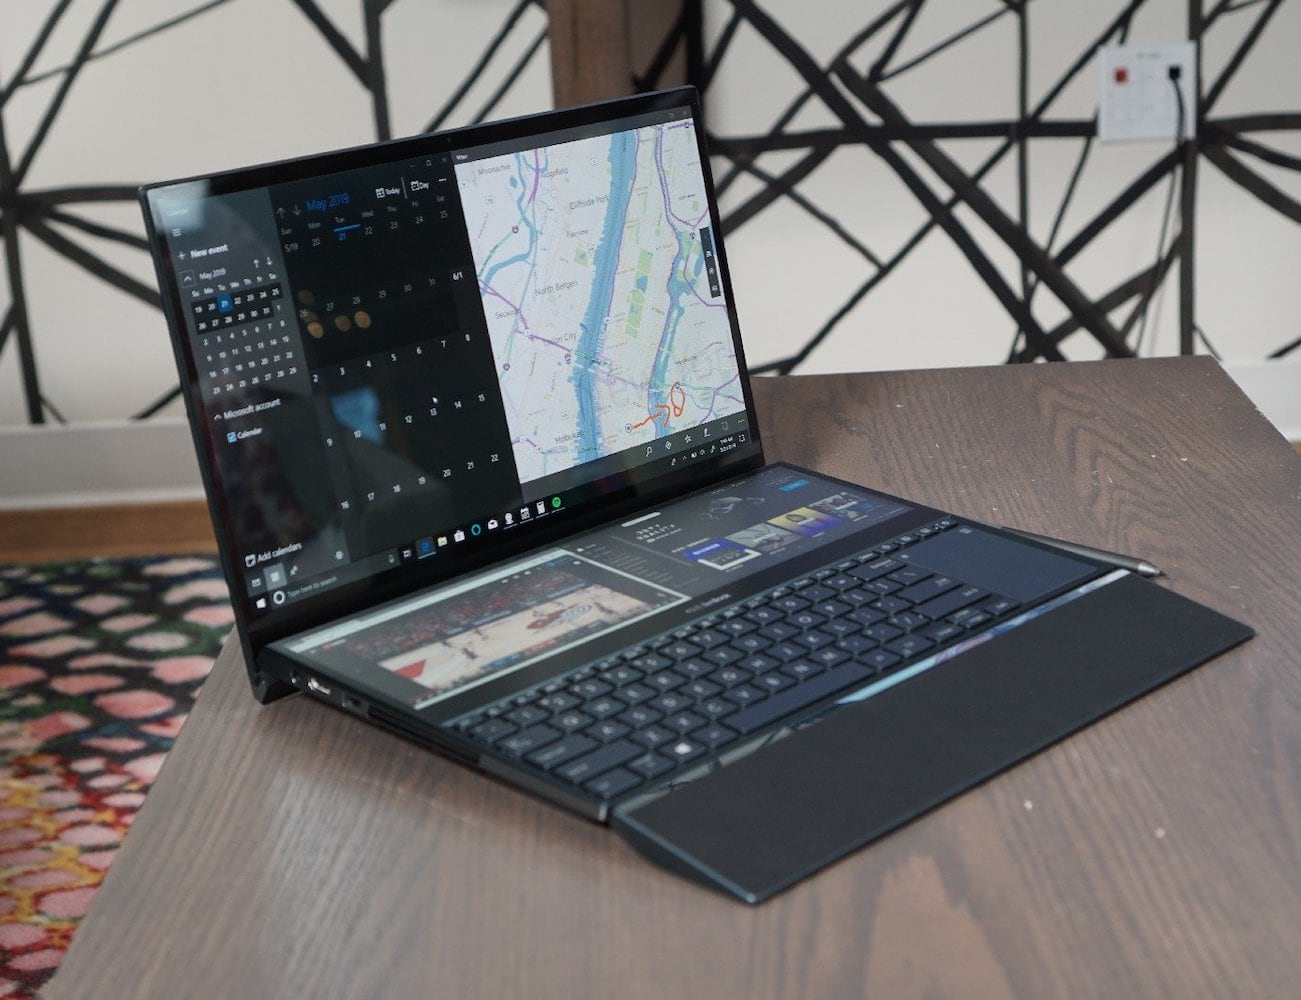 ASUS ZenBook Pro Duo Expanded-Screen Laptop gives you a screen above the keyboard